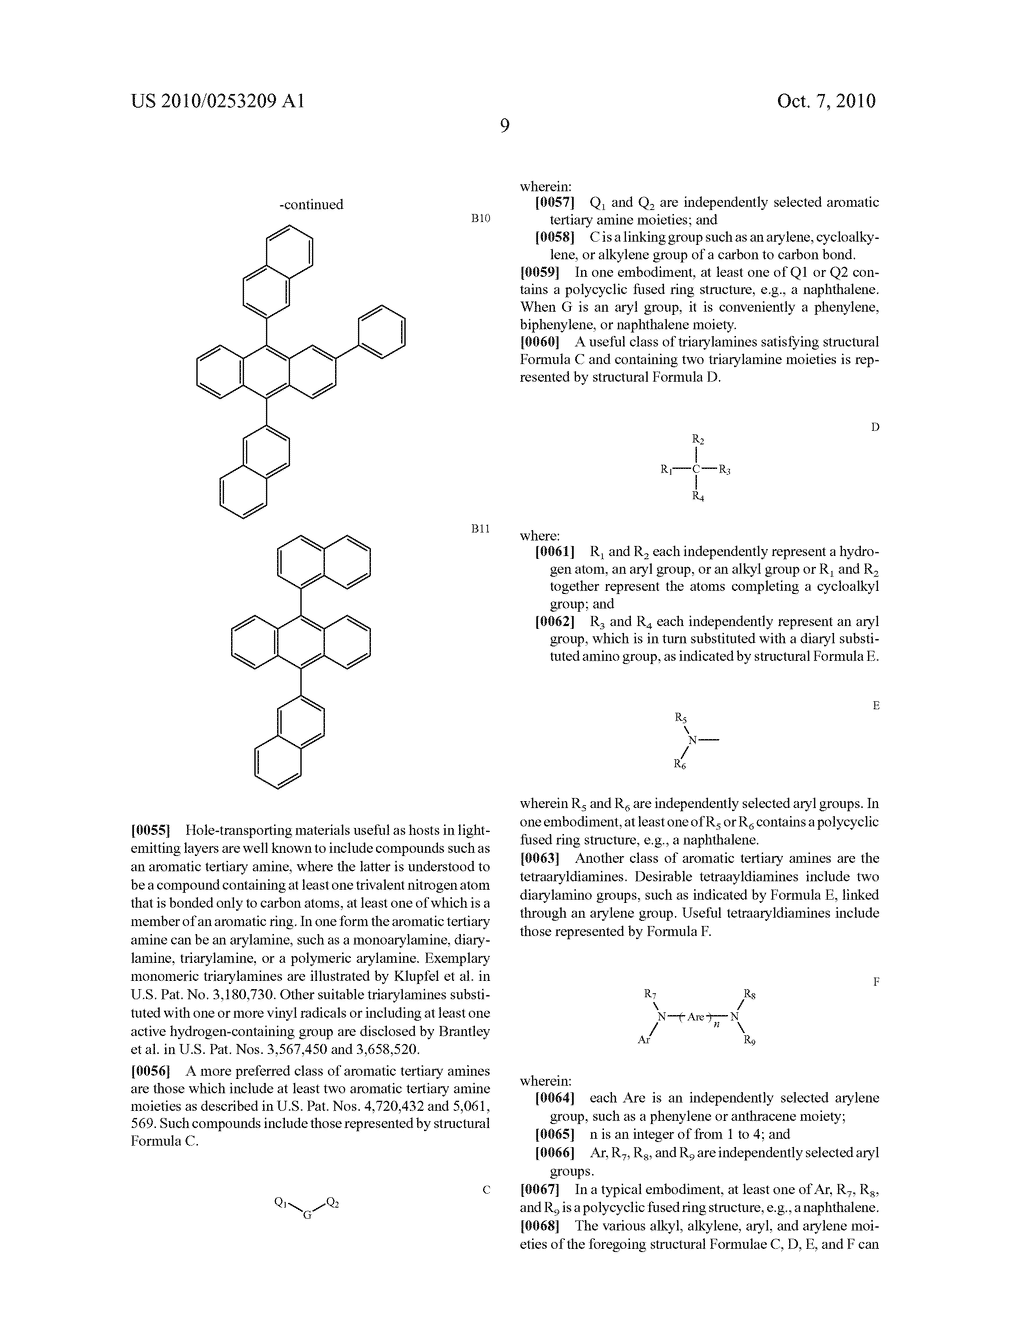 TANDEM WHITE OLED WITH EFFICIENT ELECTRON TRANSFER - diagram, schematic, and image 12